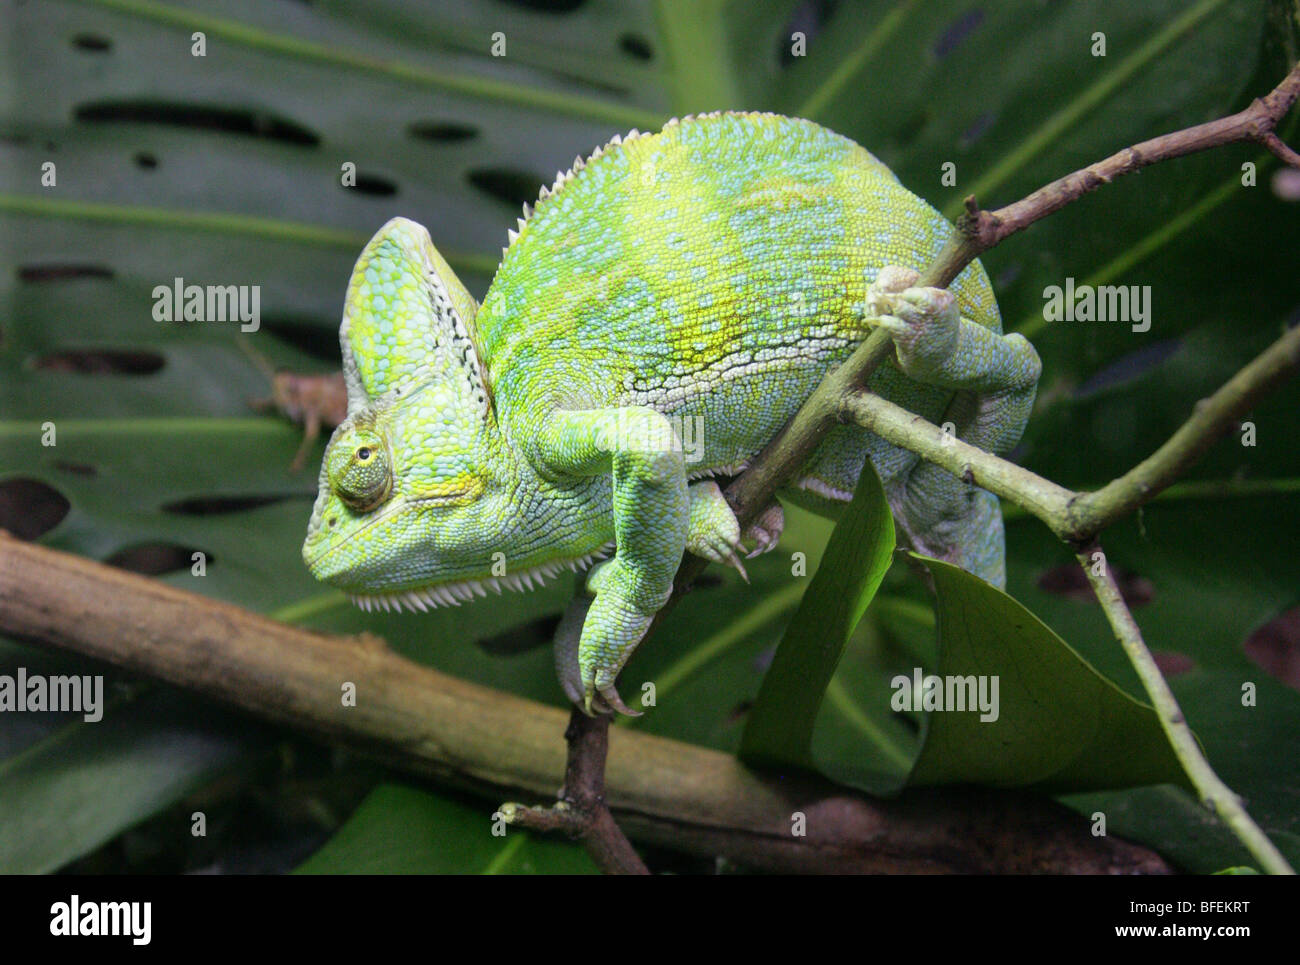 Yemen Veiled Chameleon aka Cone-headed Chameleon or Casqued Chameleon Chamaeleo calyptratus, Saudi Arabia and Yemen - Stock Image